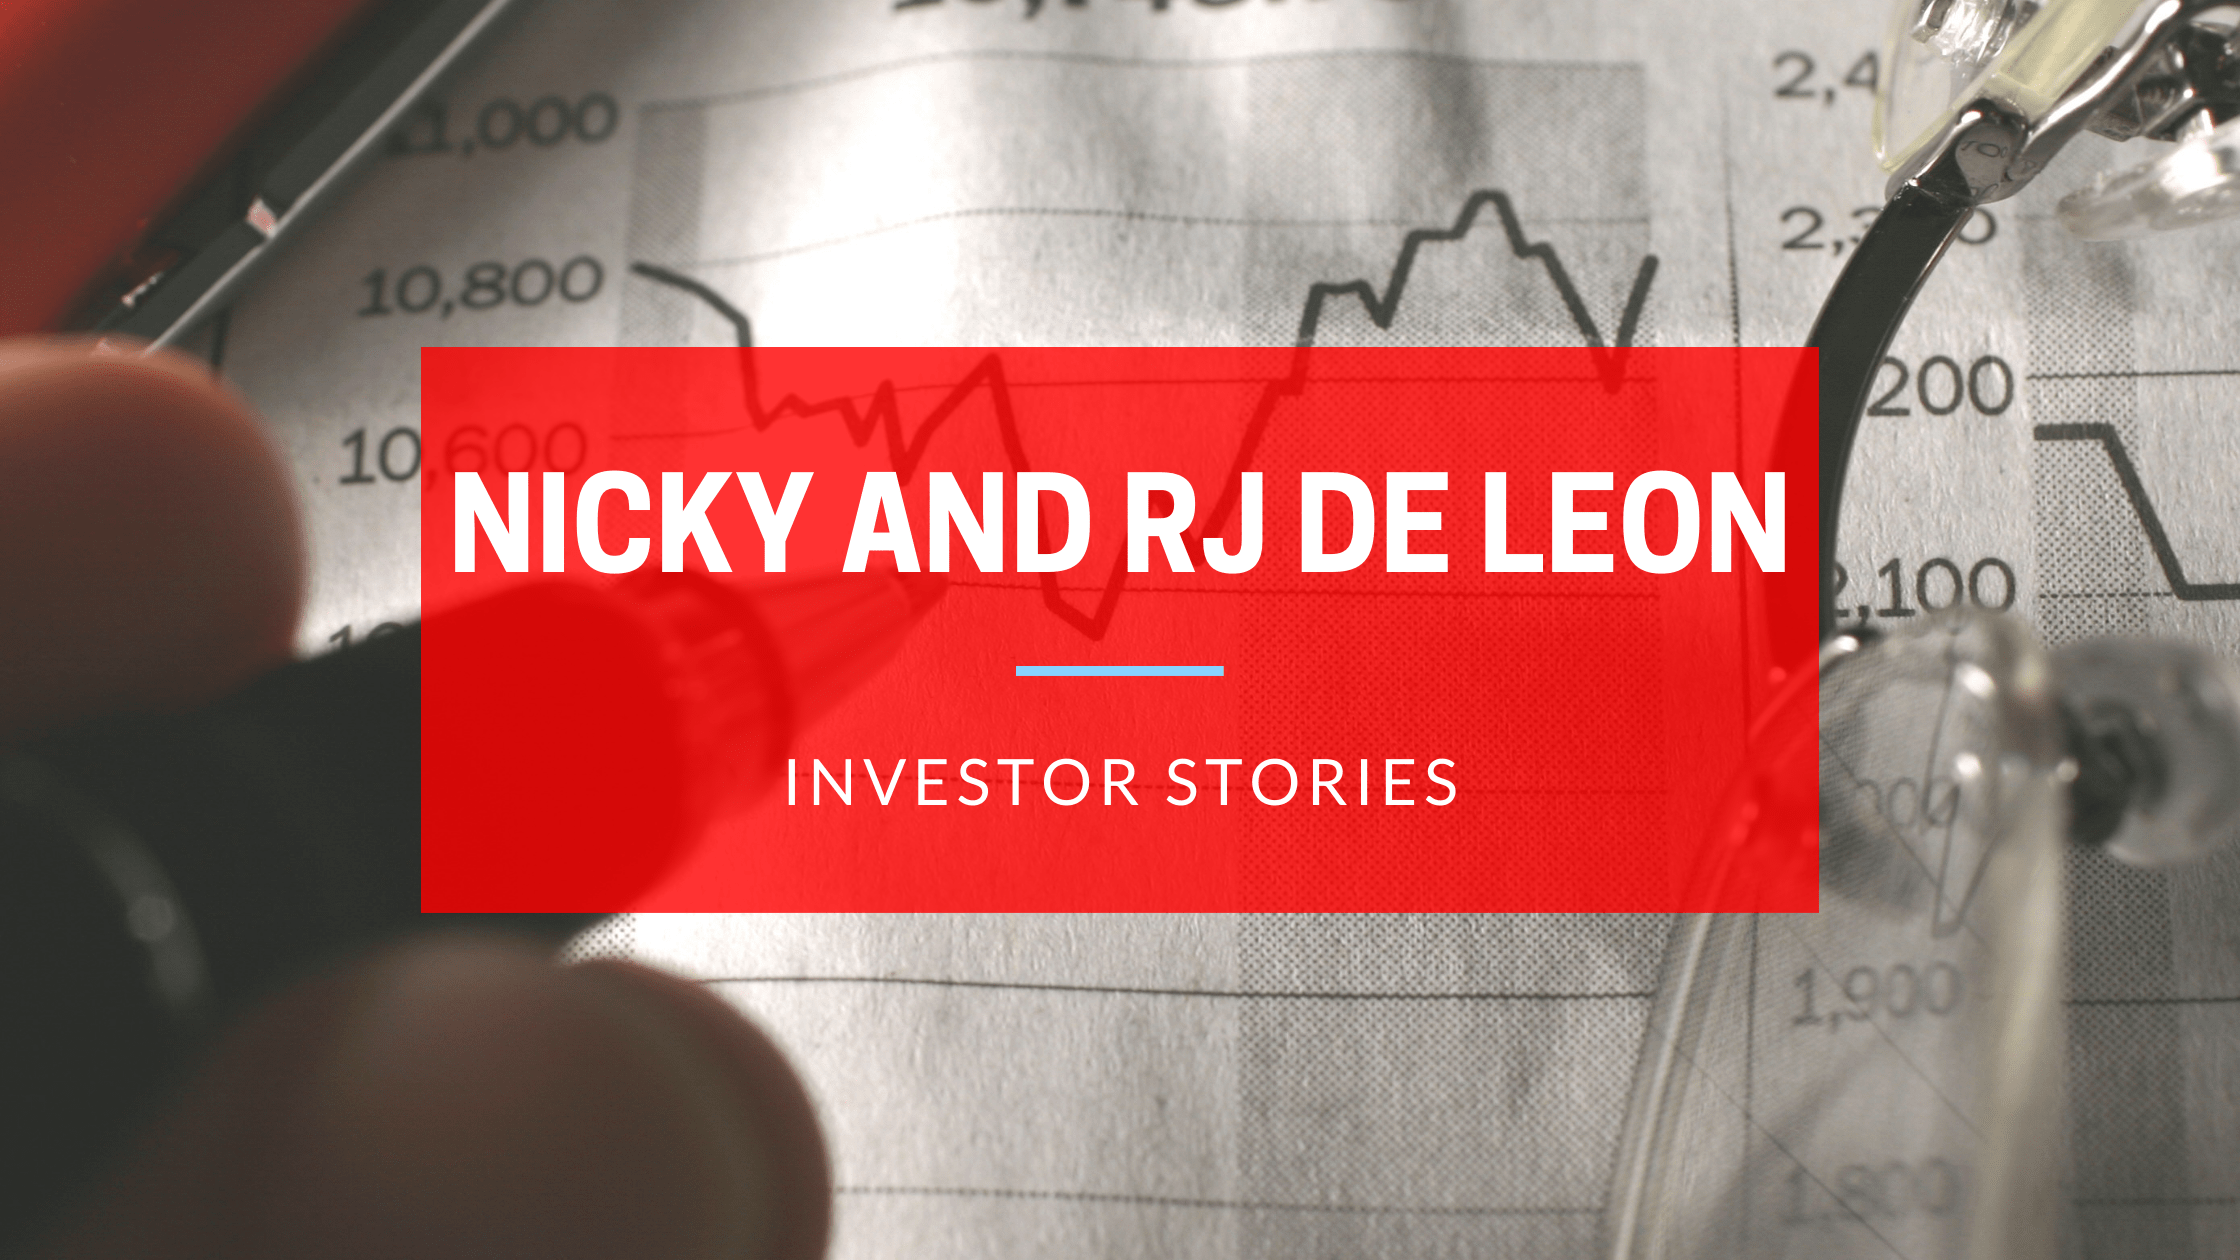 Investor Story featuring Nicky and RJ De Leon